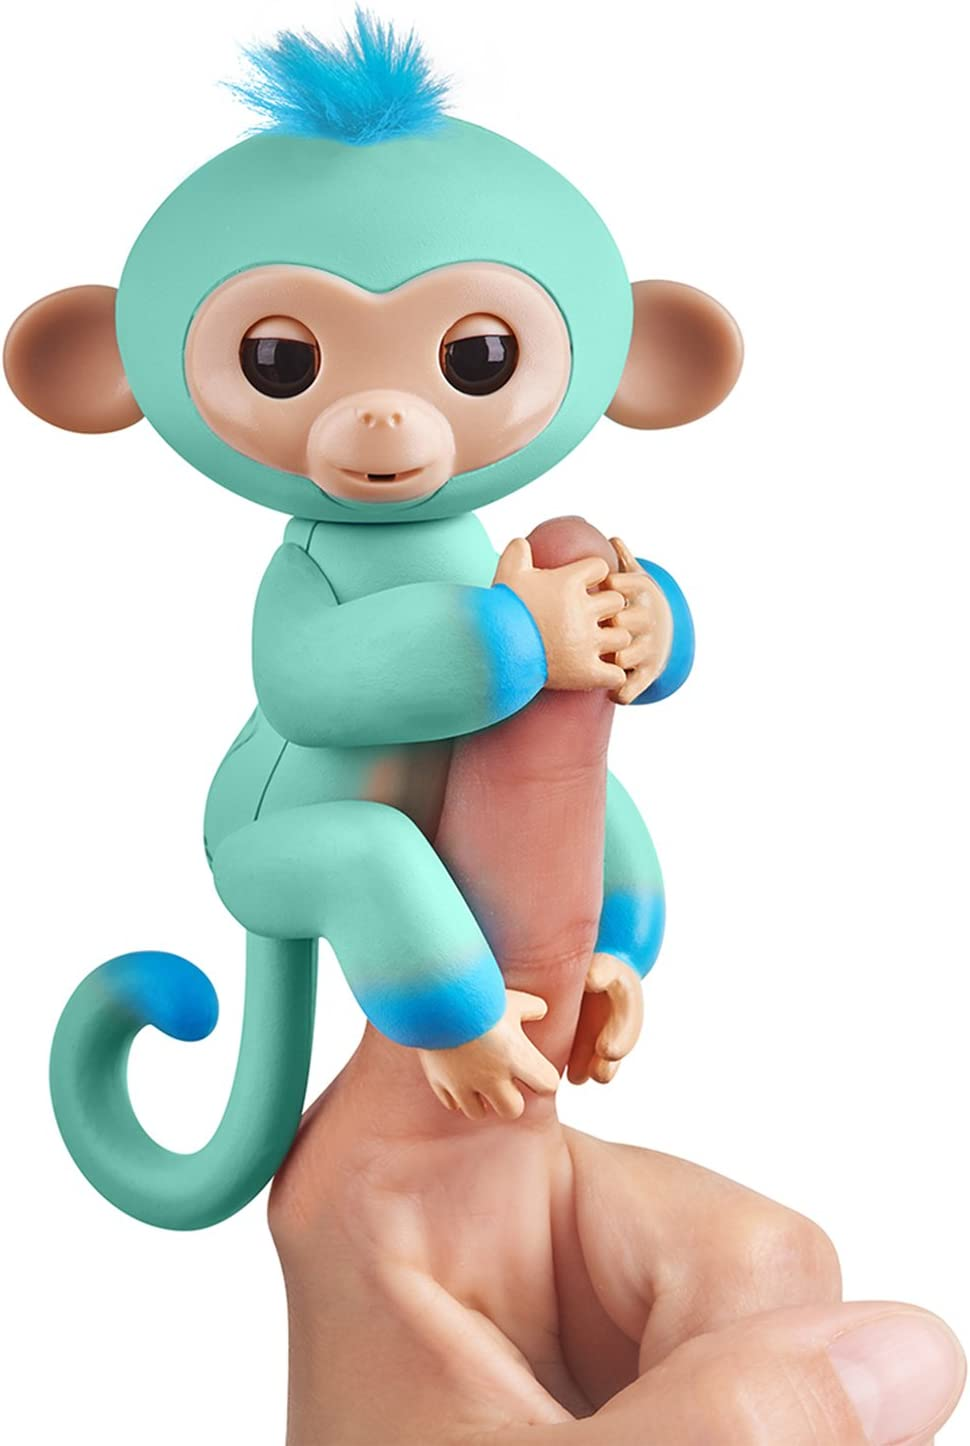 Fingerlings 2Tone Monkey - Eddie (Seafoam Green with Blue Accents) - Interactive Baby Pet